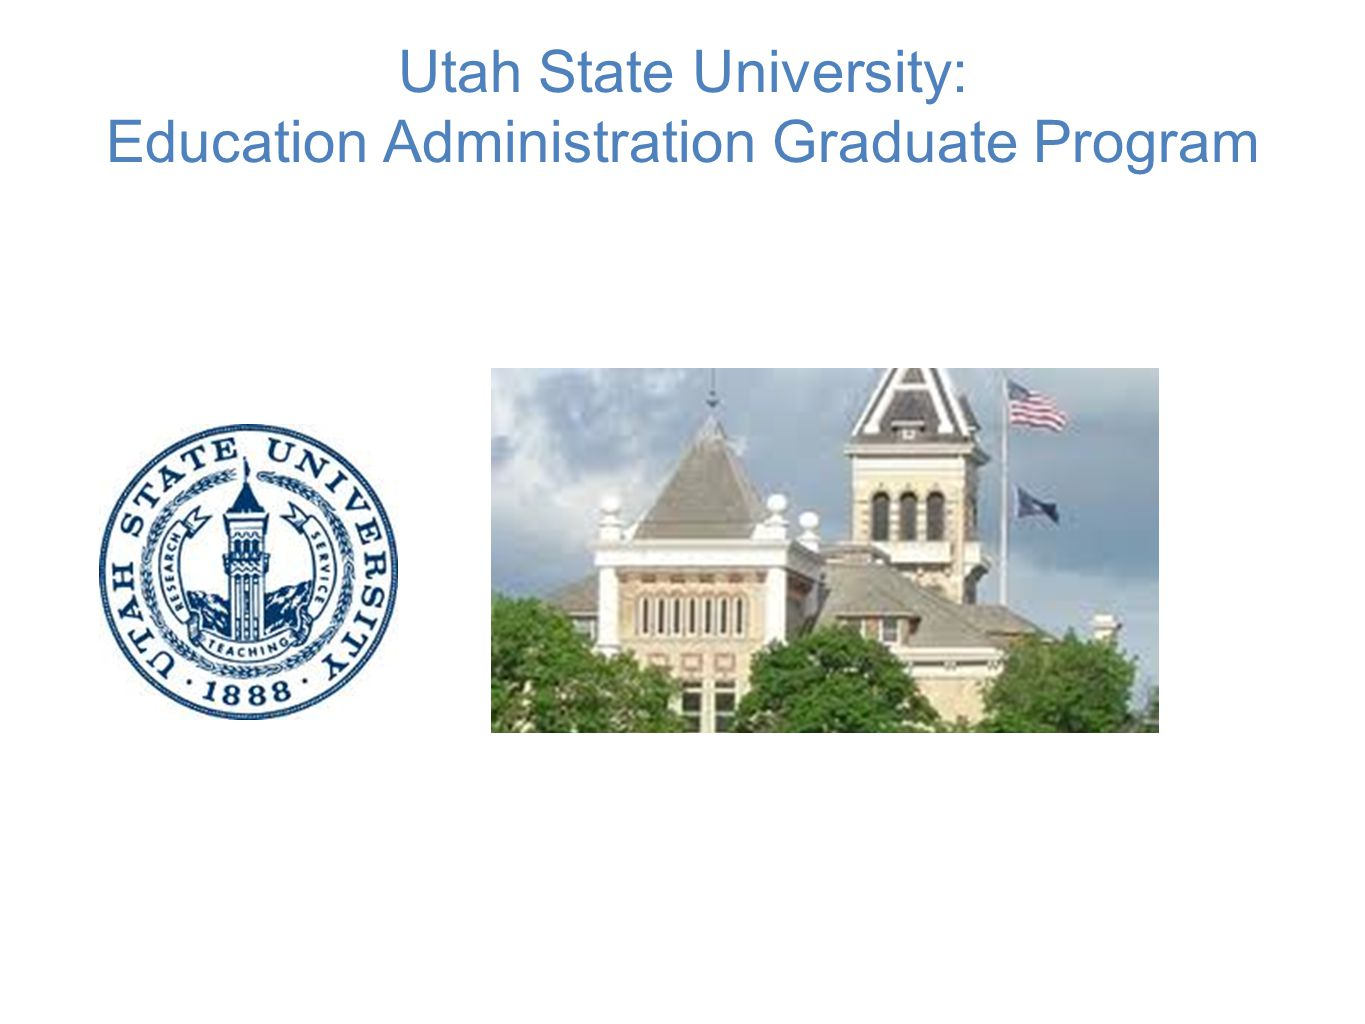 Utah State University: Education Administration Graduate Program